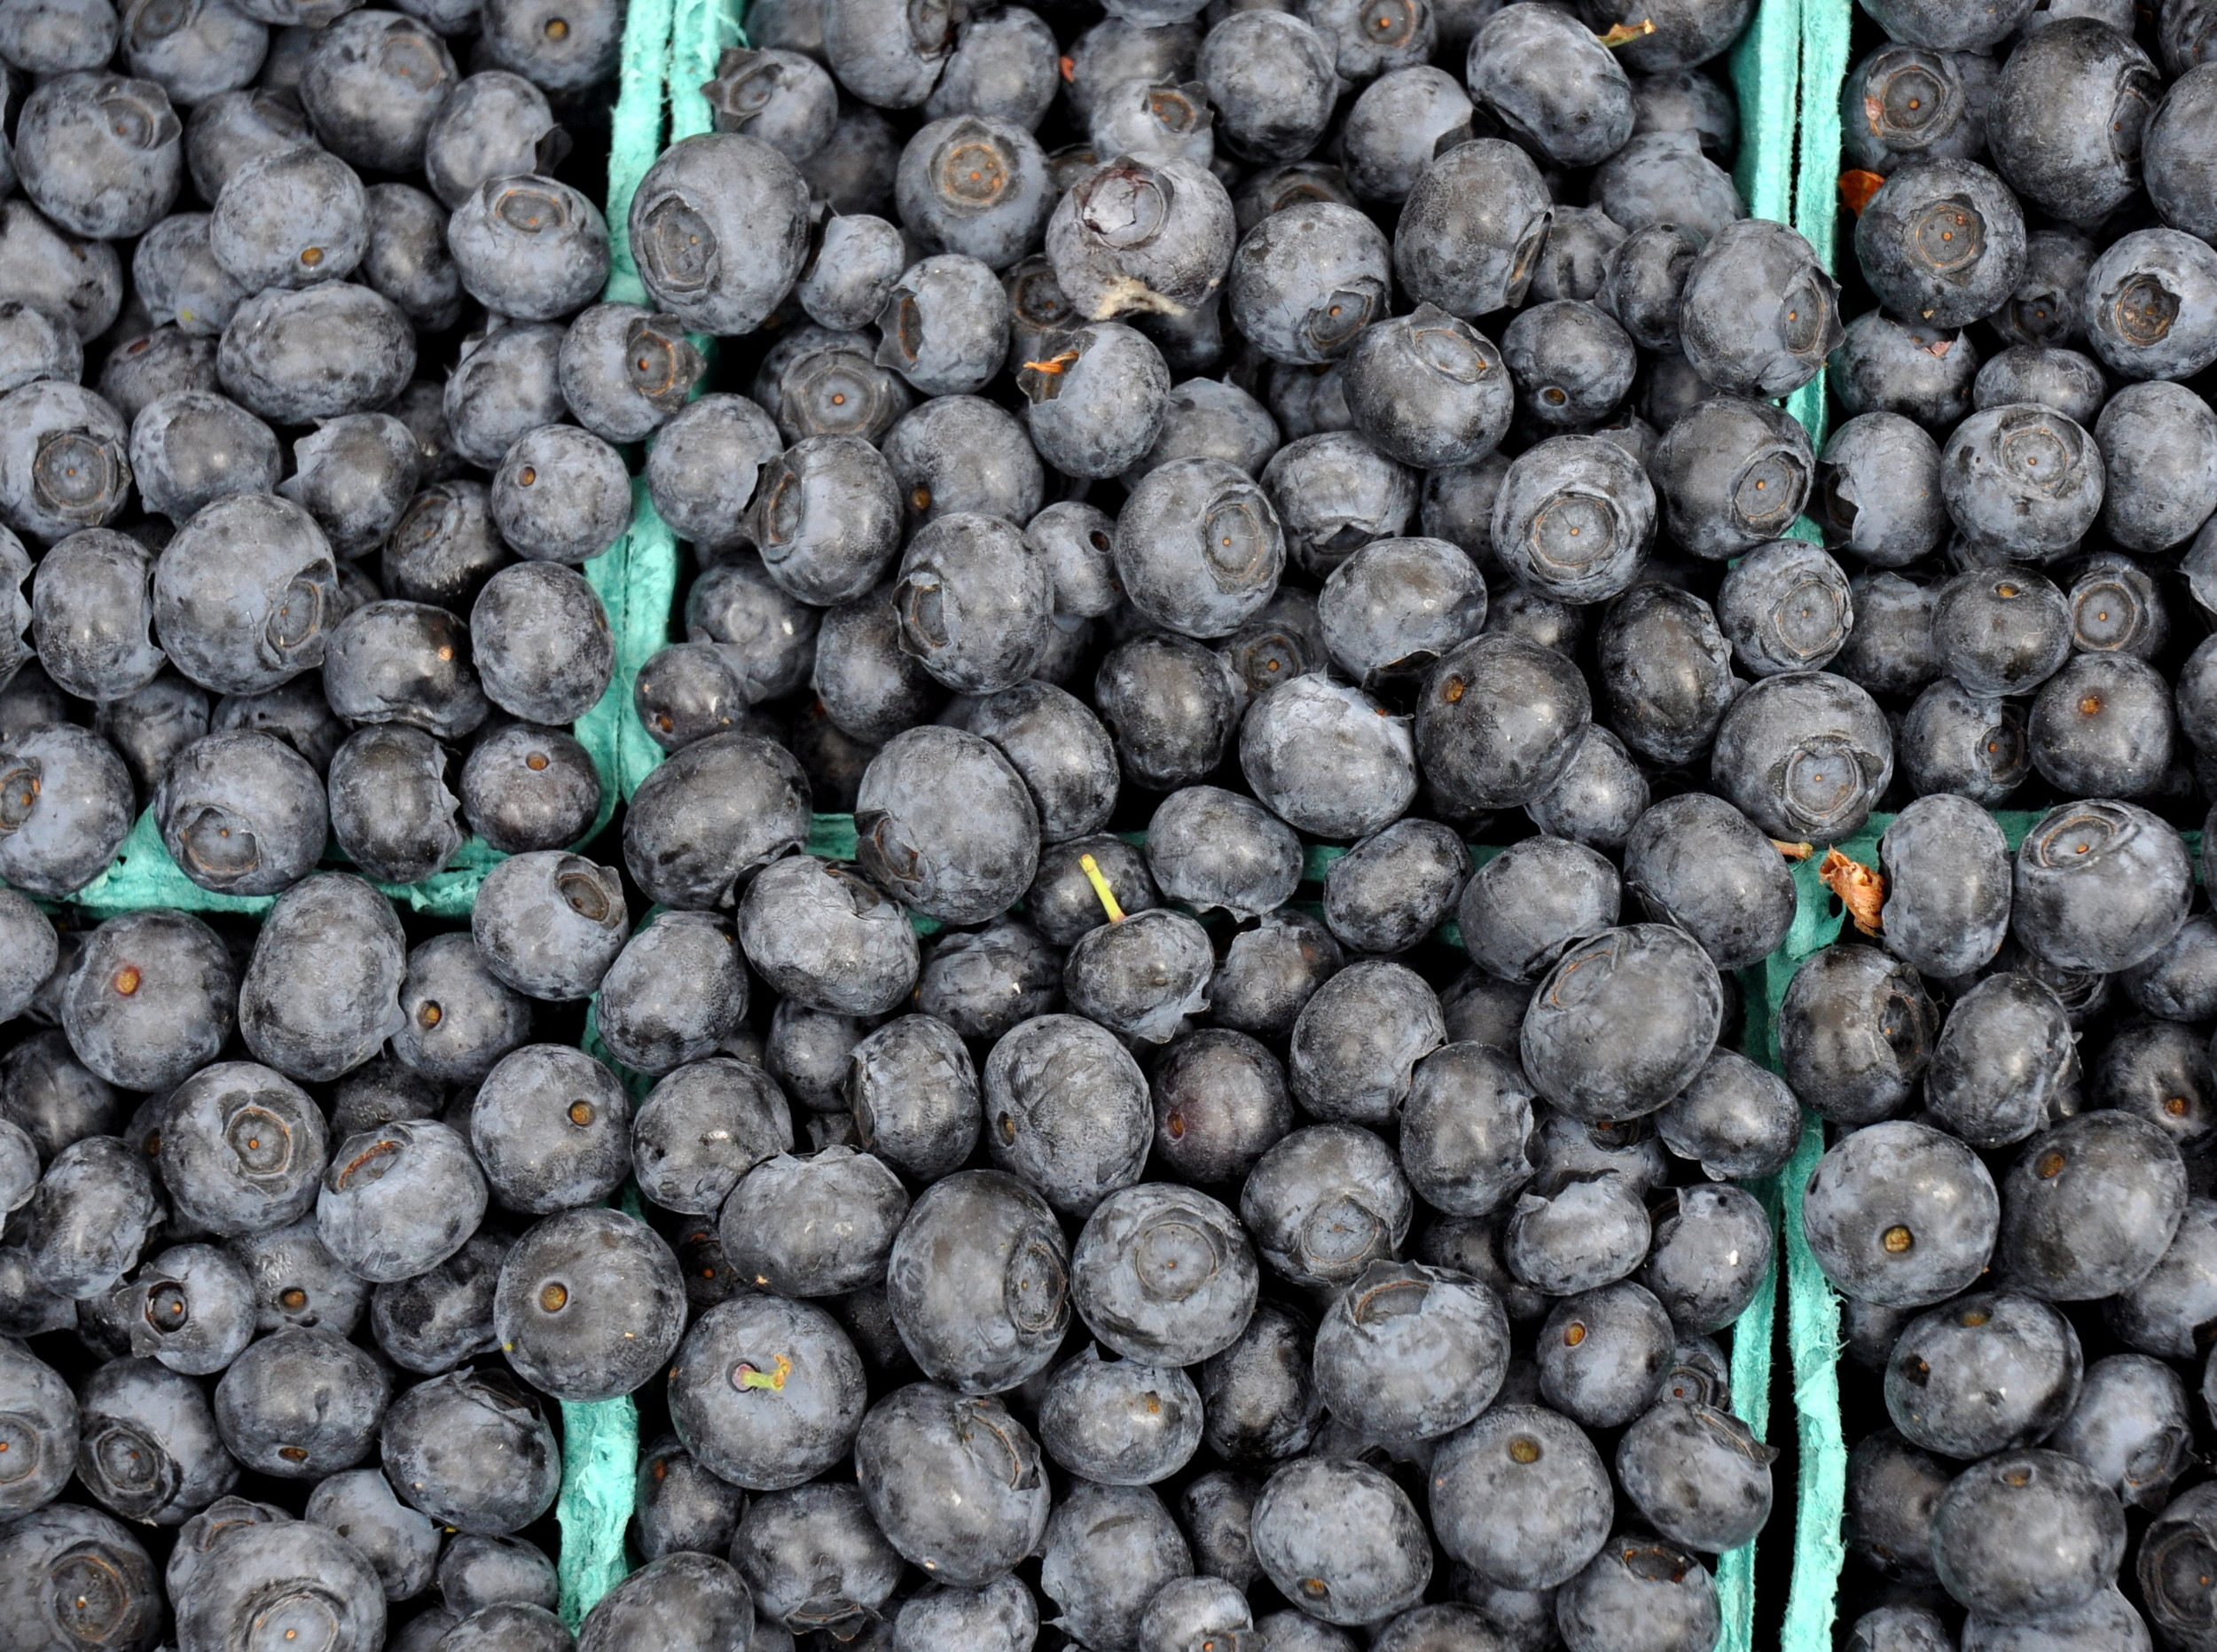 Blueberries from Sidhu Farms.. Photo copyright 2013 by Zachary D. Lyons.